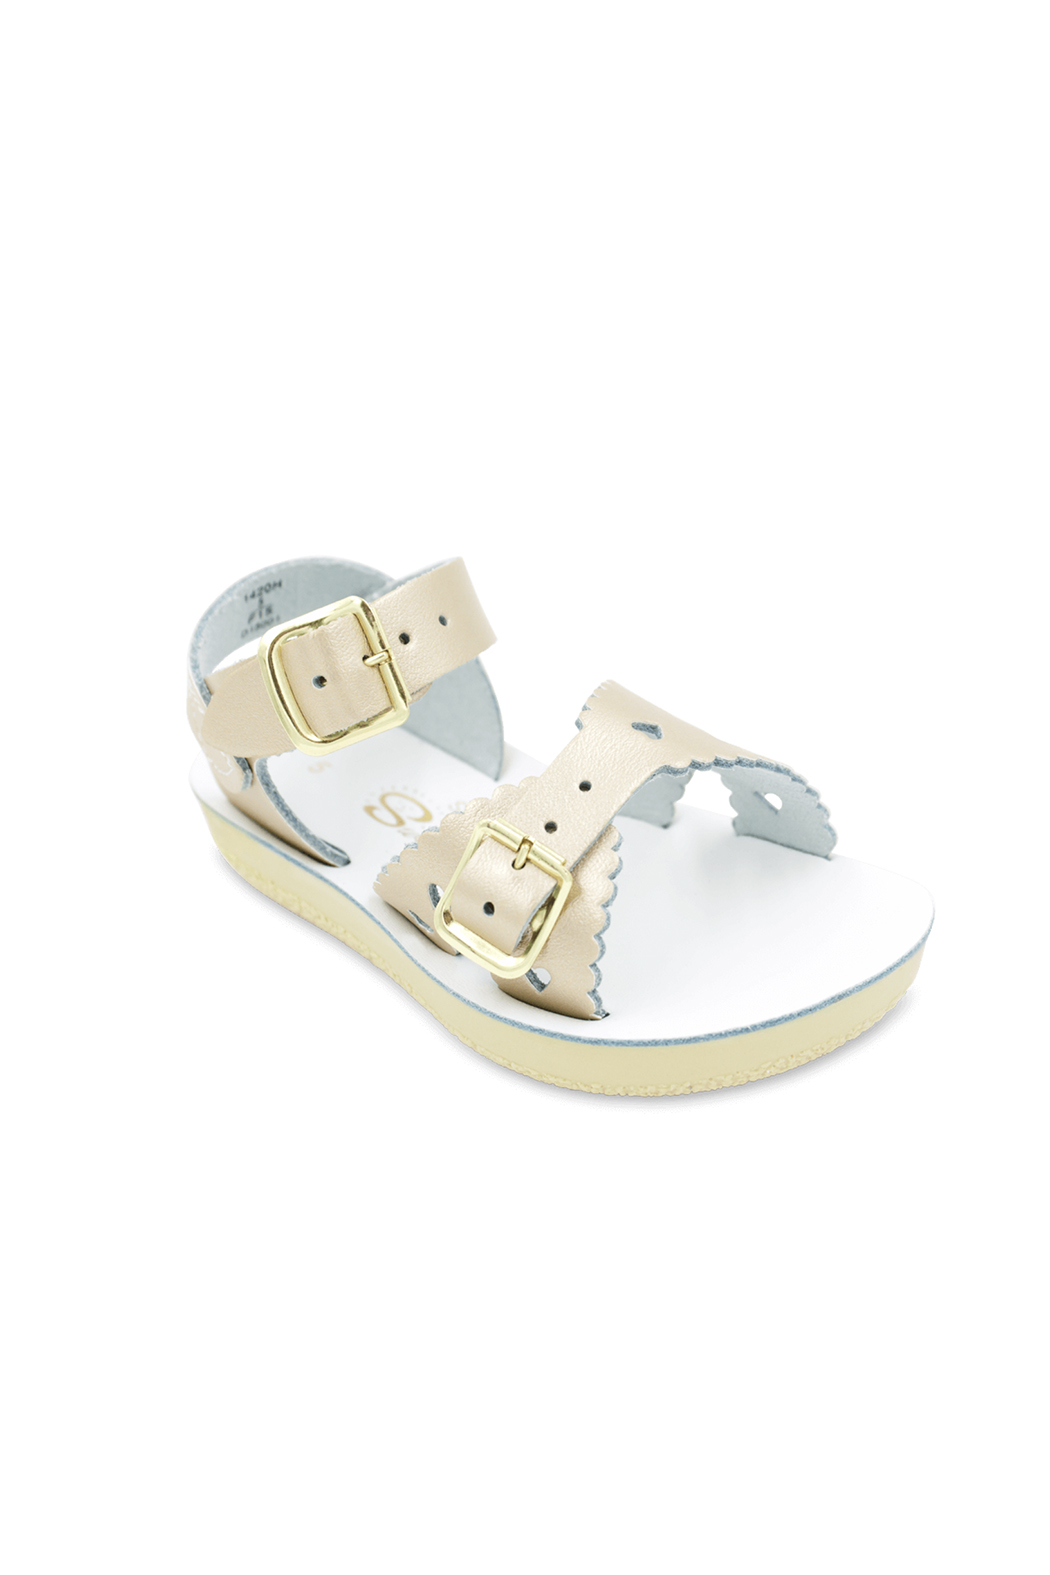 Hoy Shoes Sweetheart Sandal - Front Cropped Image